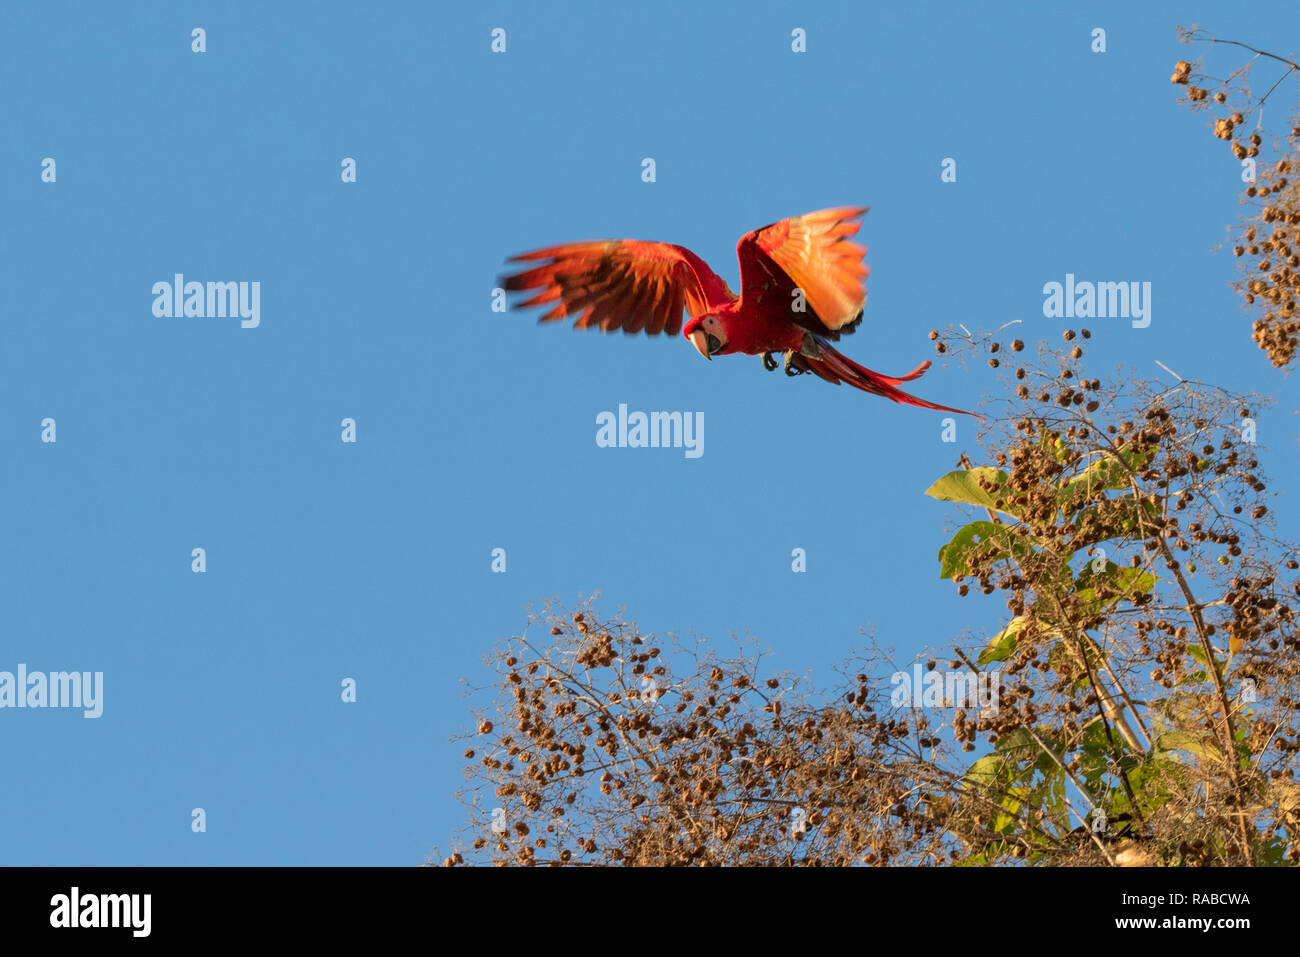 Scarlet Macaw (Ara macao) flying over nut trees in blue sky, Puntarenas, Costa Rica - Stock Image